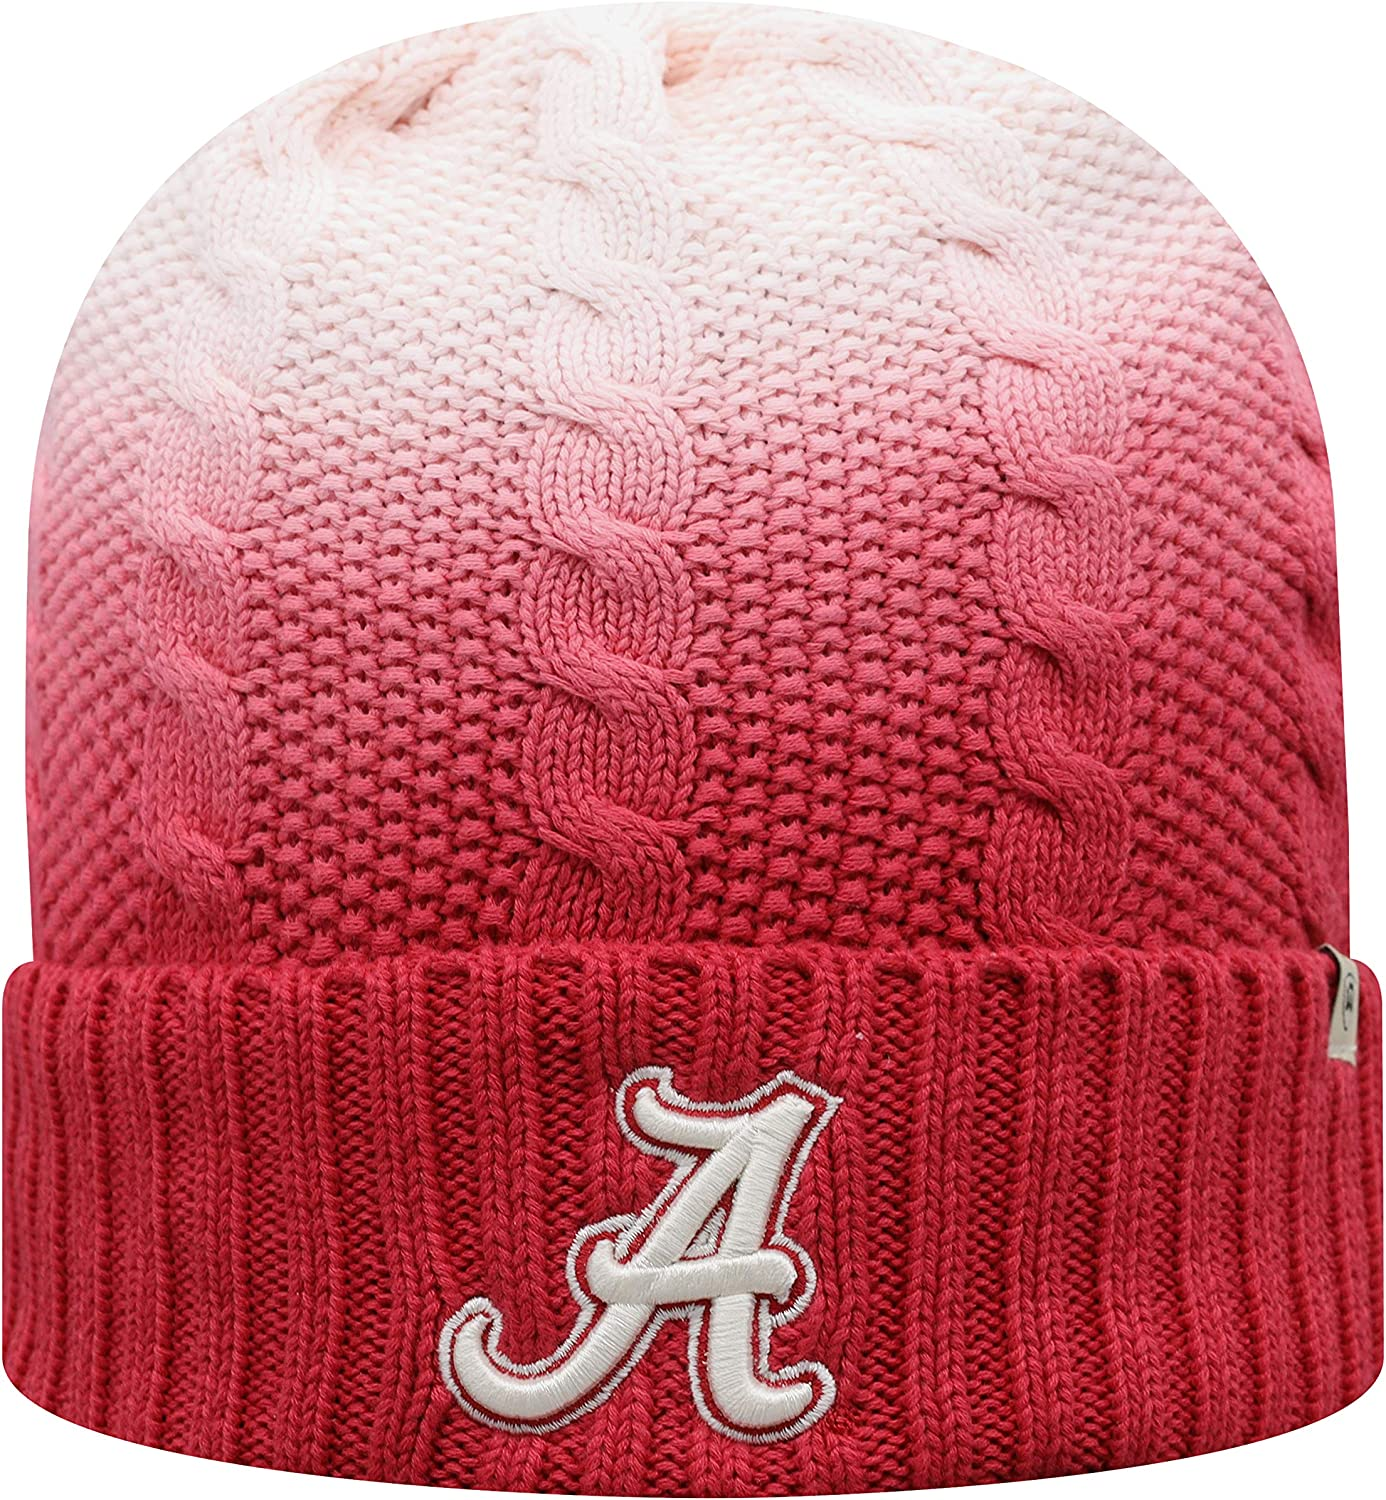 Top of the World Team Color Cable Knit Cuffed Knit Winter Hat